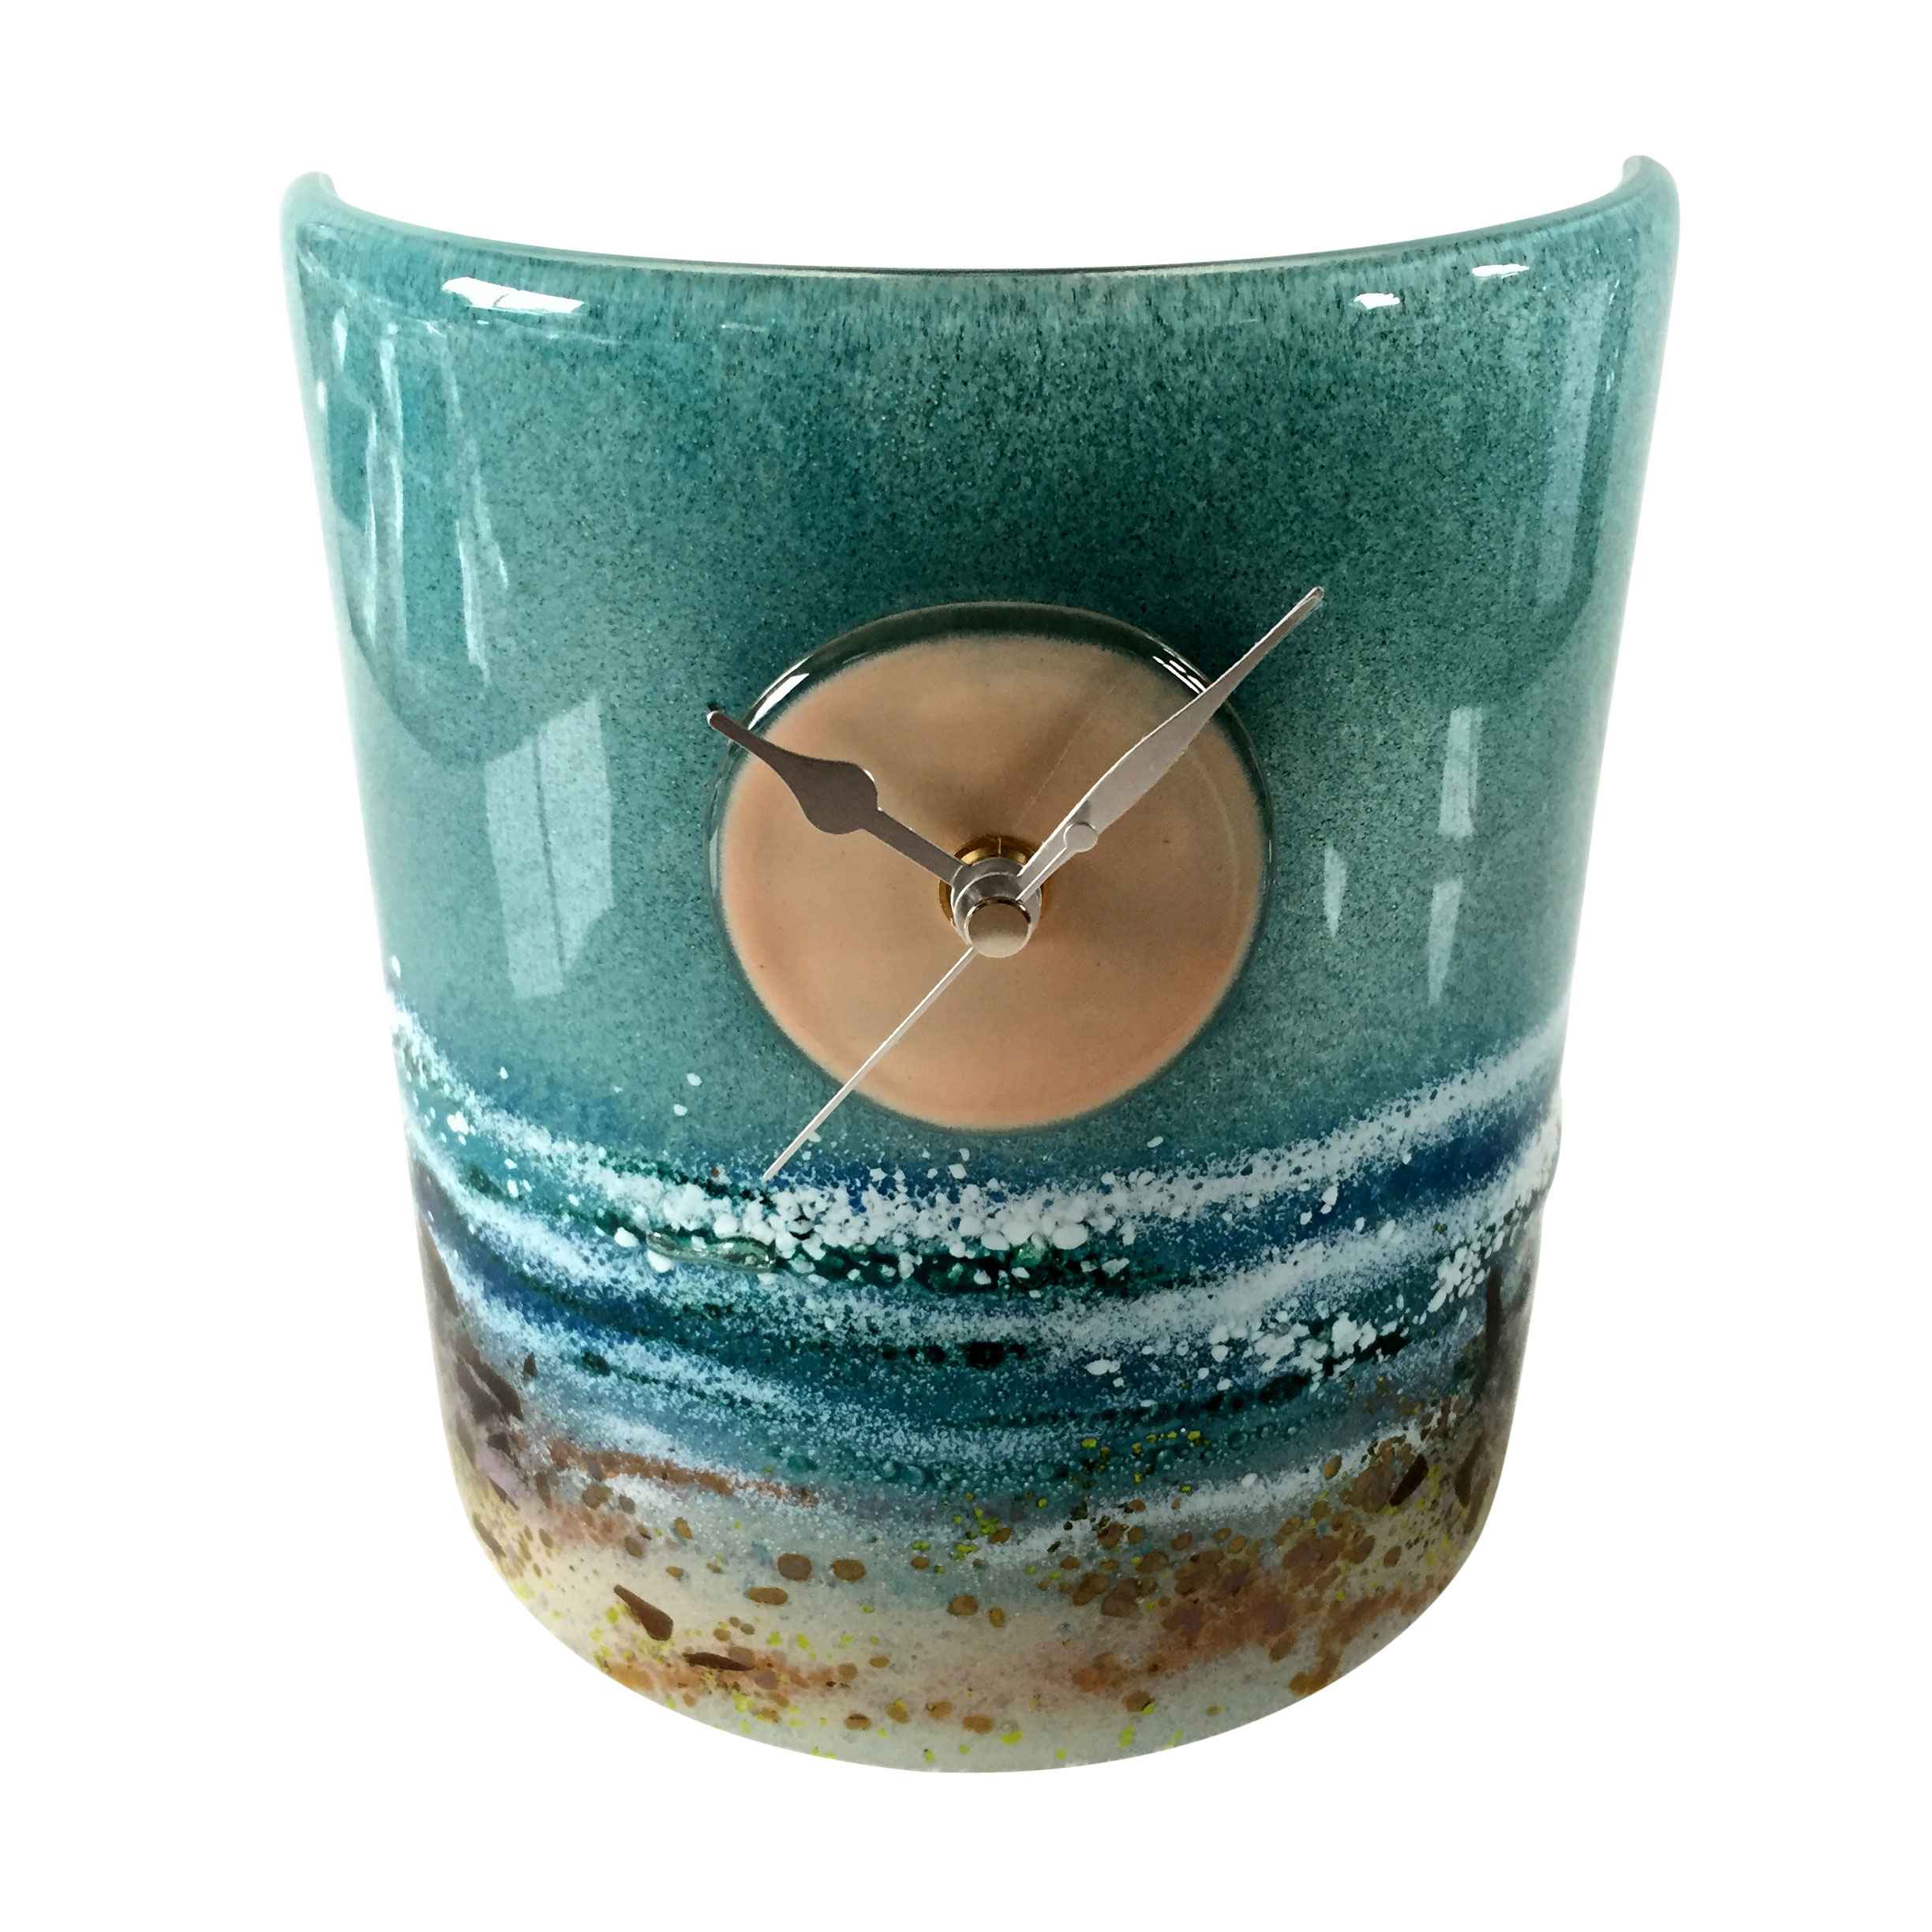 Row of beach huts curved fused glass table clock - Sandy Beach Walk Curved Fused Glass Table Clock